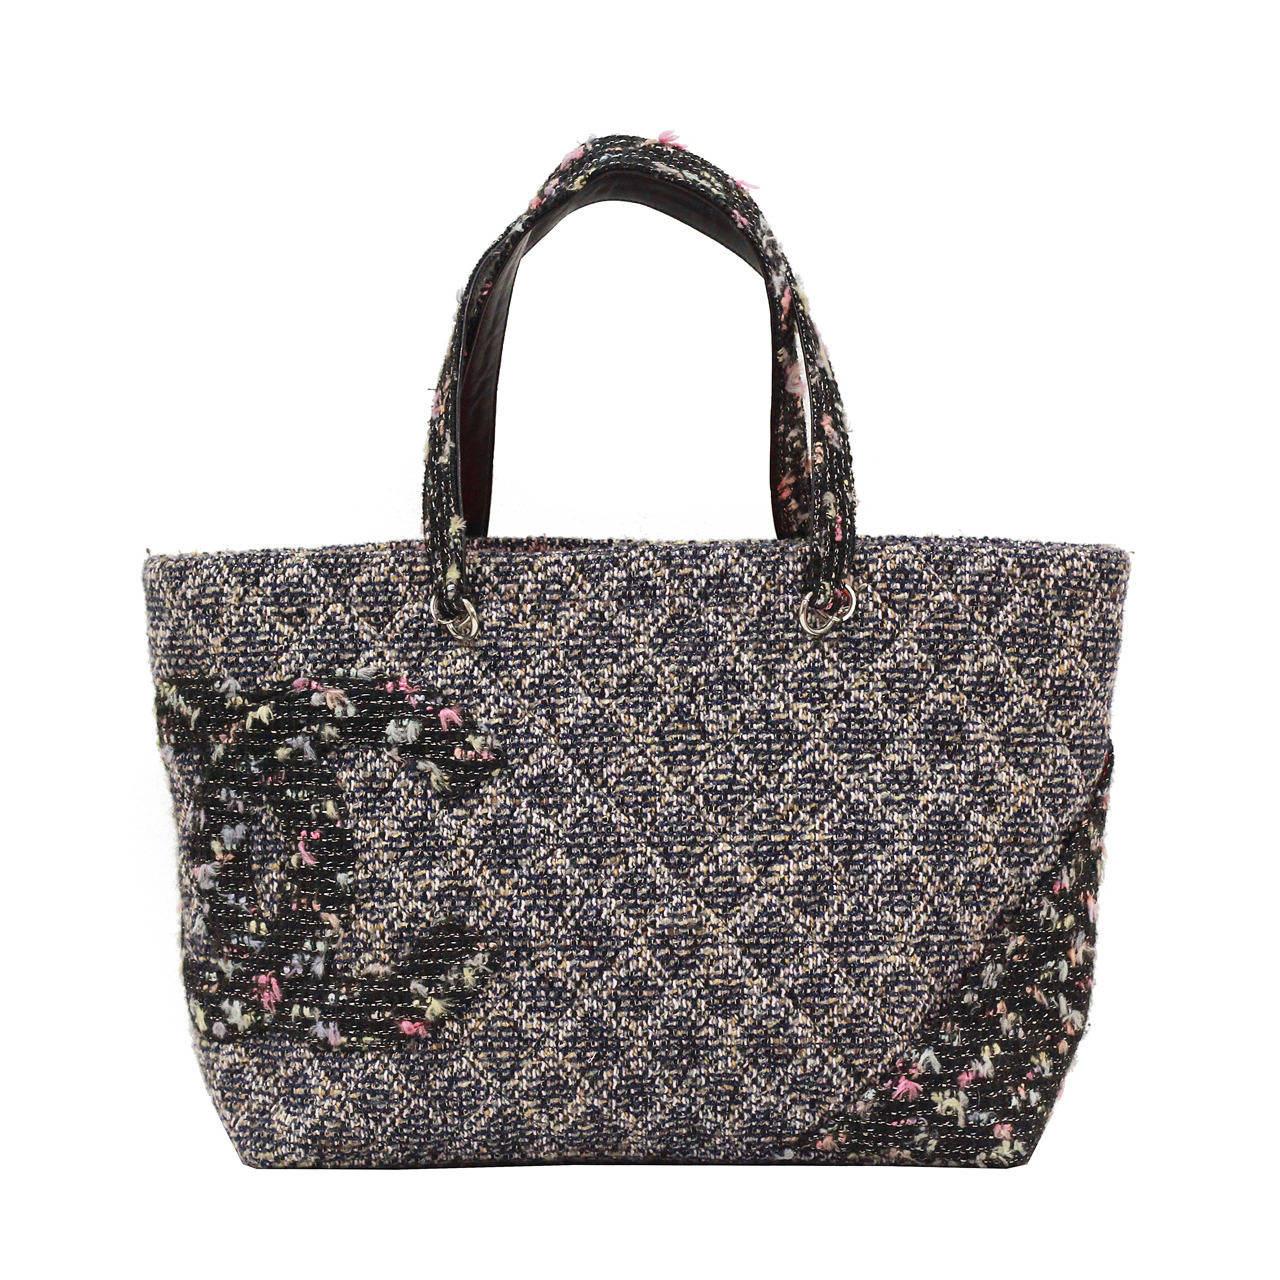 301c5944f118 Quilted Chanel Tweed CC Cambon Large Shopper Tote at 1stdibs